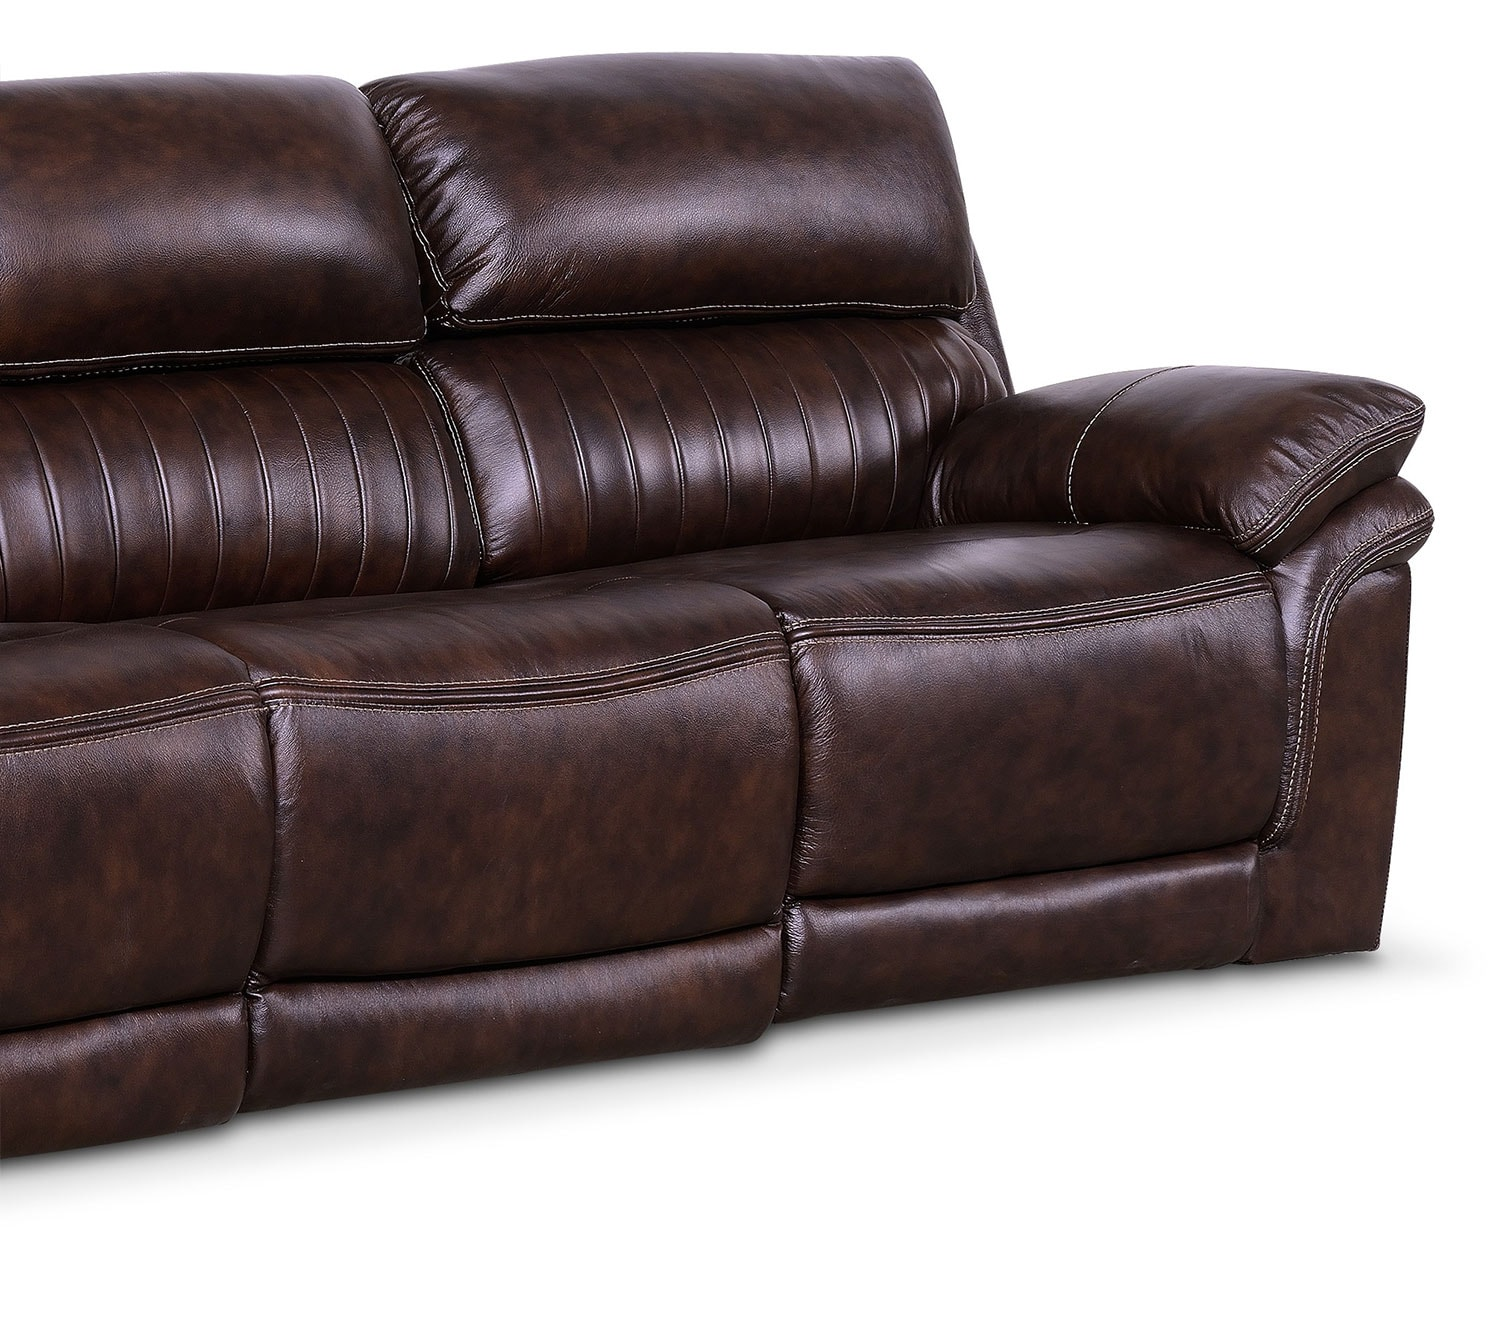 Monterey 3 Piece Power Reclining Sofa Chocolate